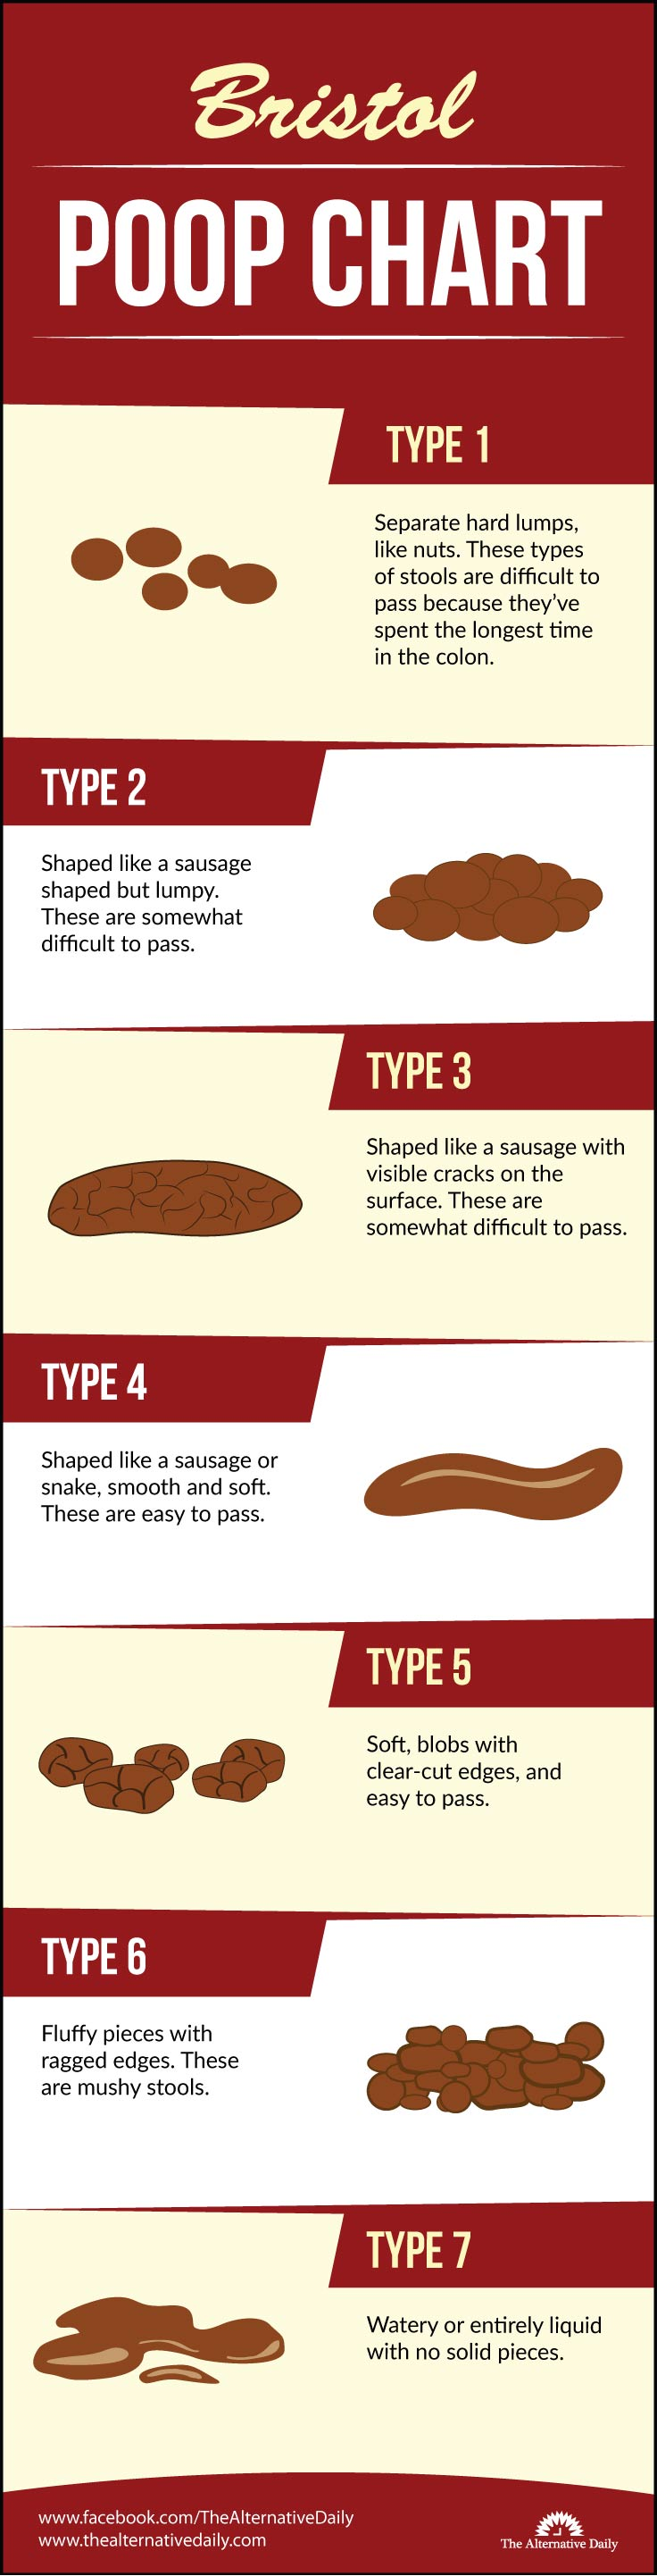 Bristol Poop Chart Which Of These 7 Types Of Poop Do You